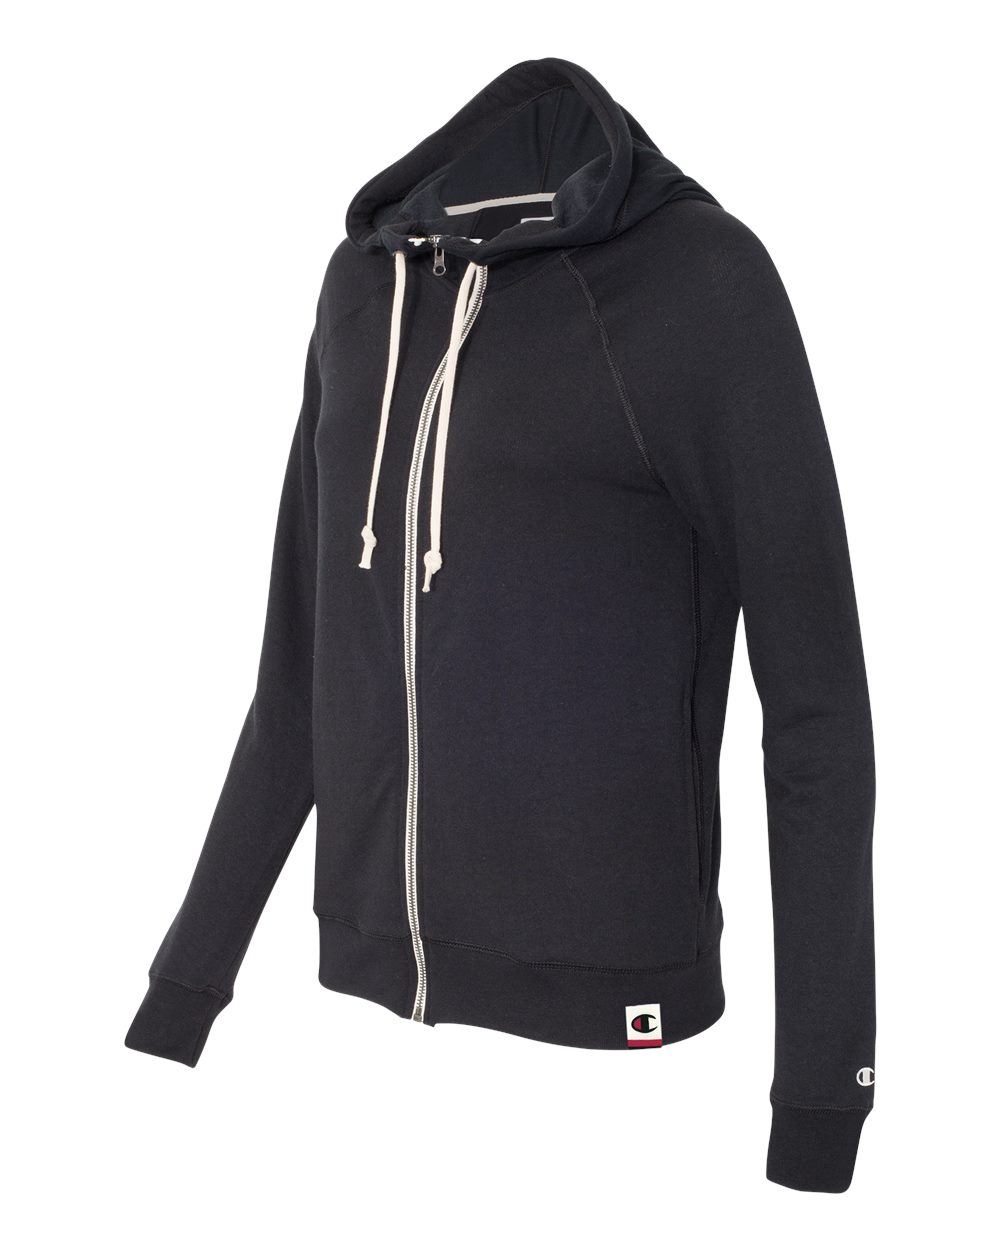 Champion AO650 - Authentic Originals Women's French Terry Hooded Full-Zip